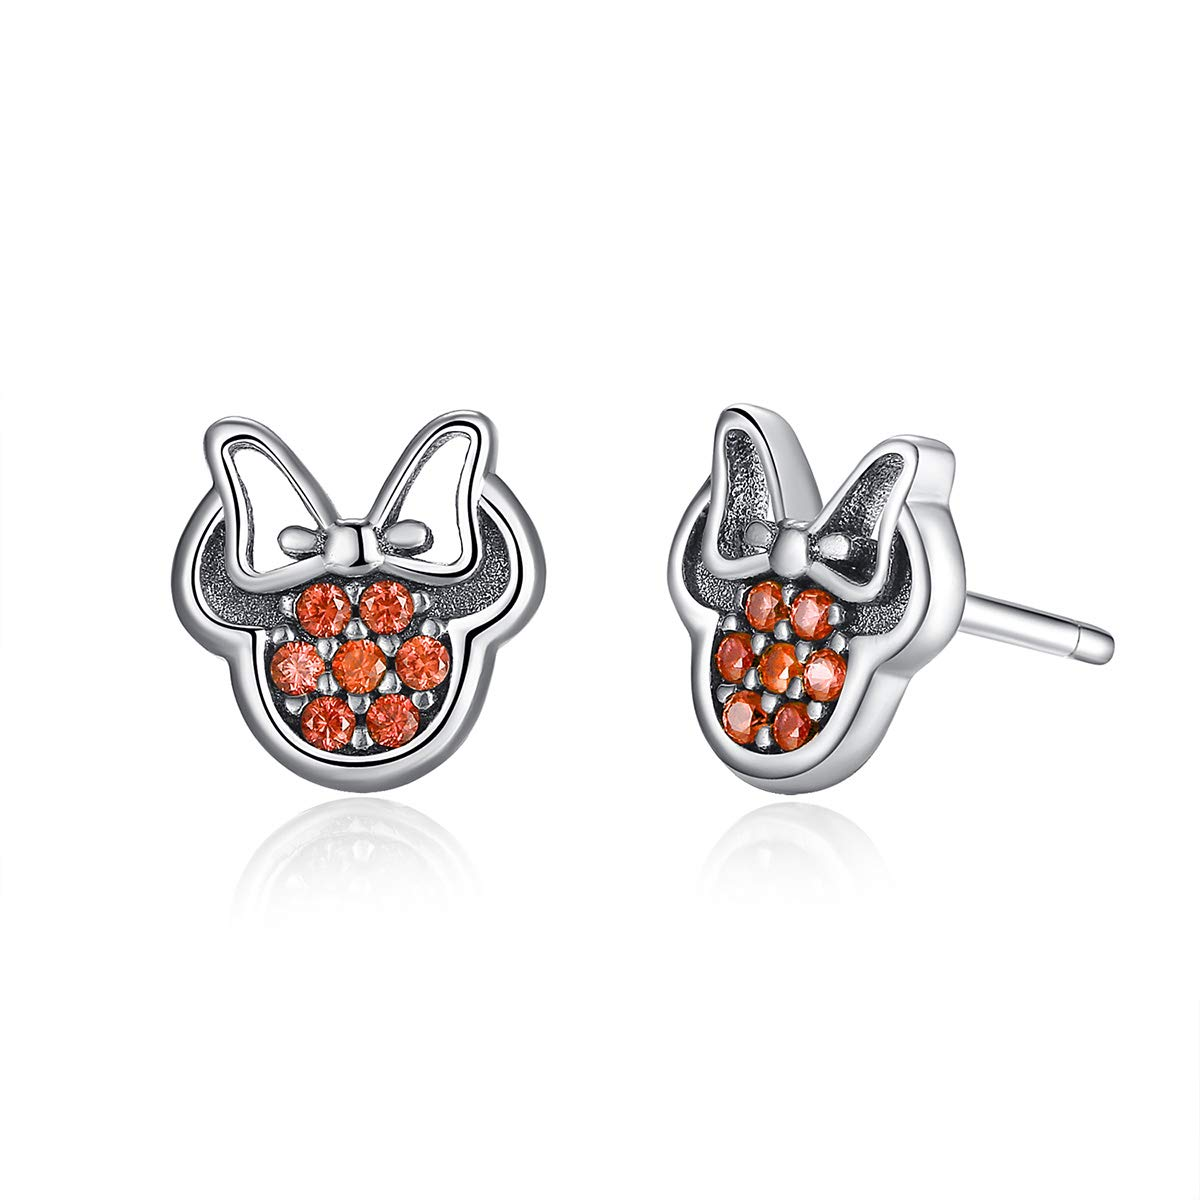 333b2e723 Amazon.com: BISAER Cute Mini Mouse Stud Earrings 925 Sterling Silver Stud  Earrings with Fashion Red Cubic Zirconia Studs for Girls and Women: Jewelry